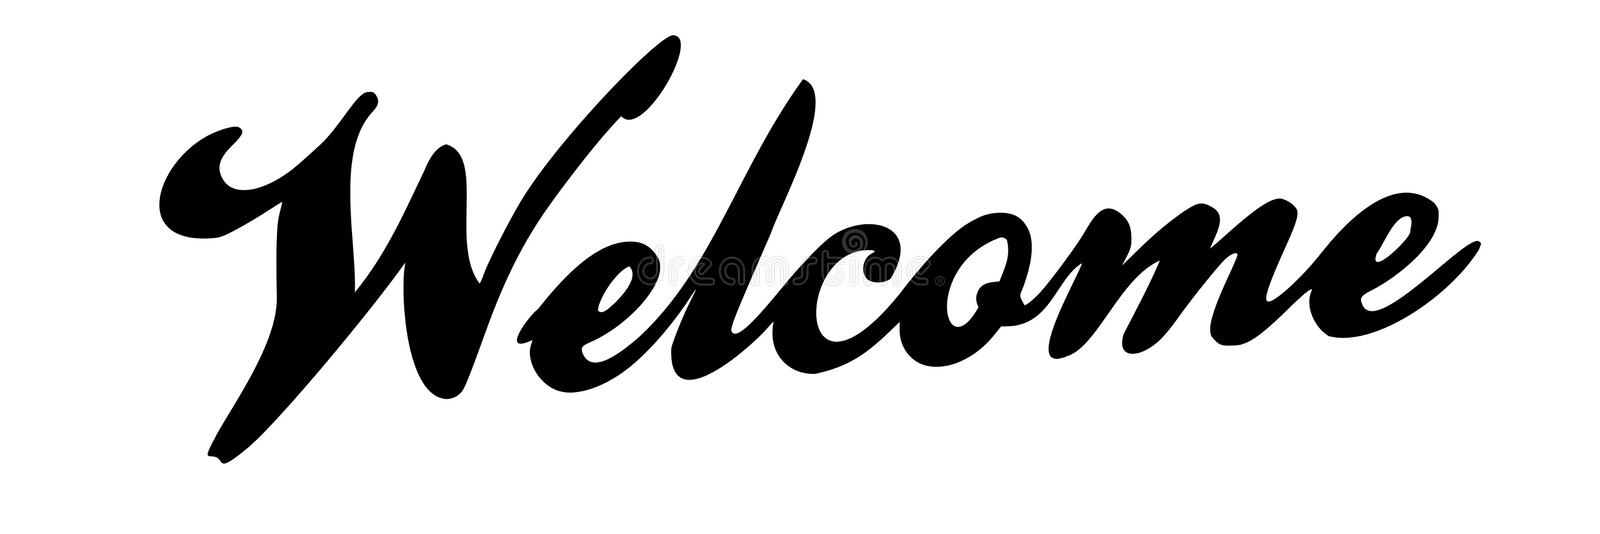 Fancy Black Welcome Handwriting Text - Vector Illustration royalty free illustration